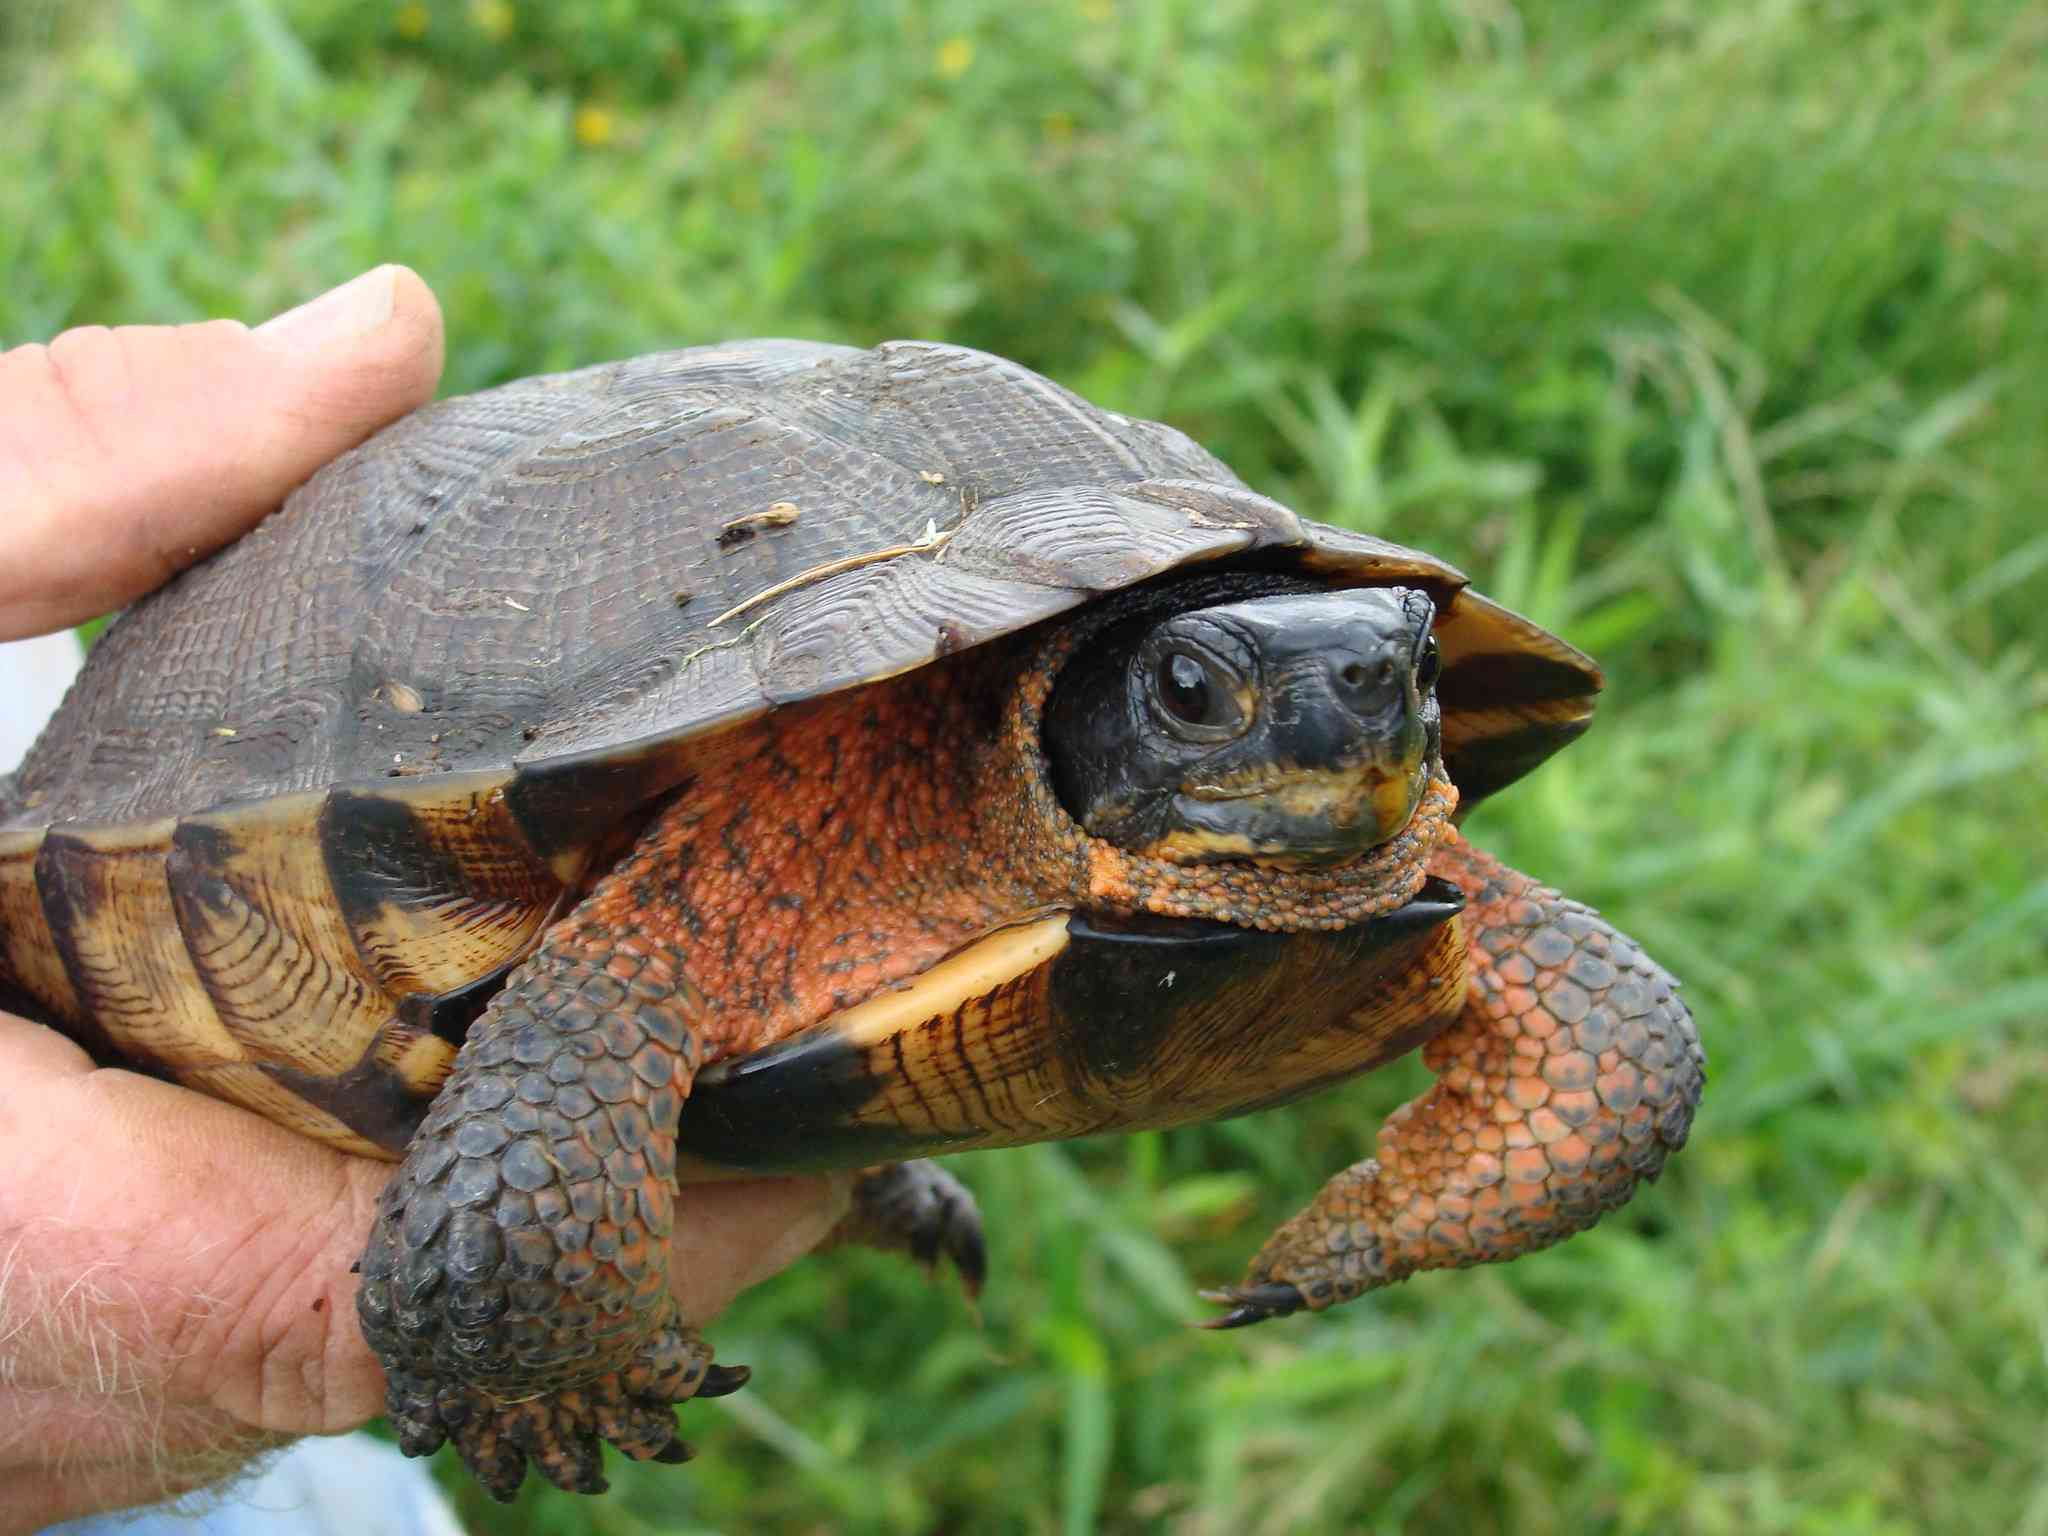 Wood Turtle being held above grass